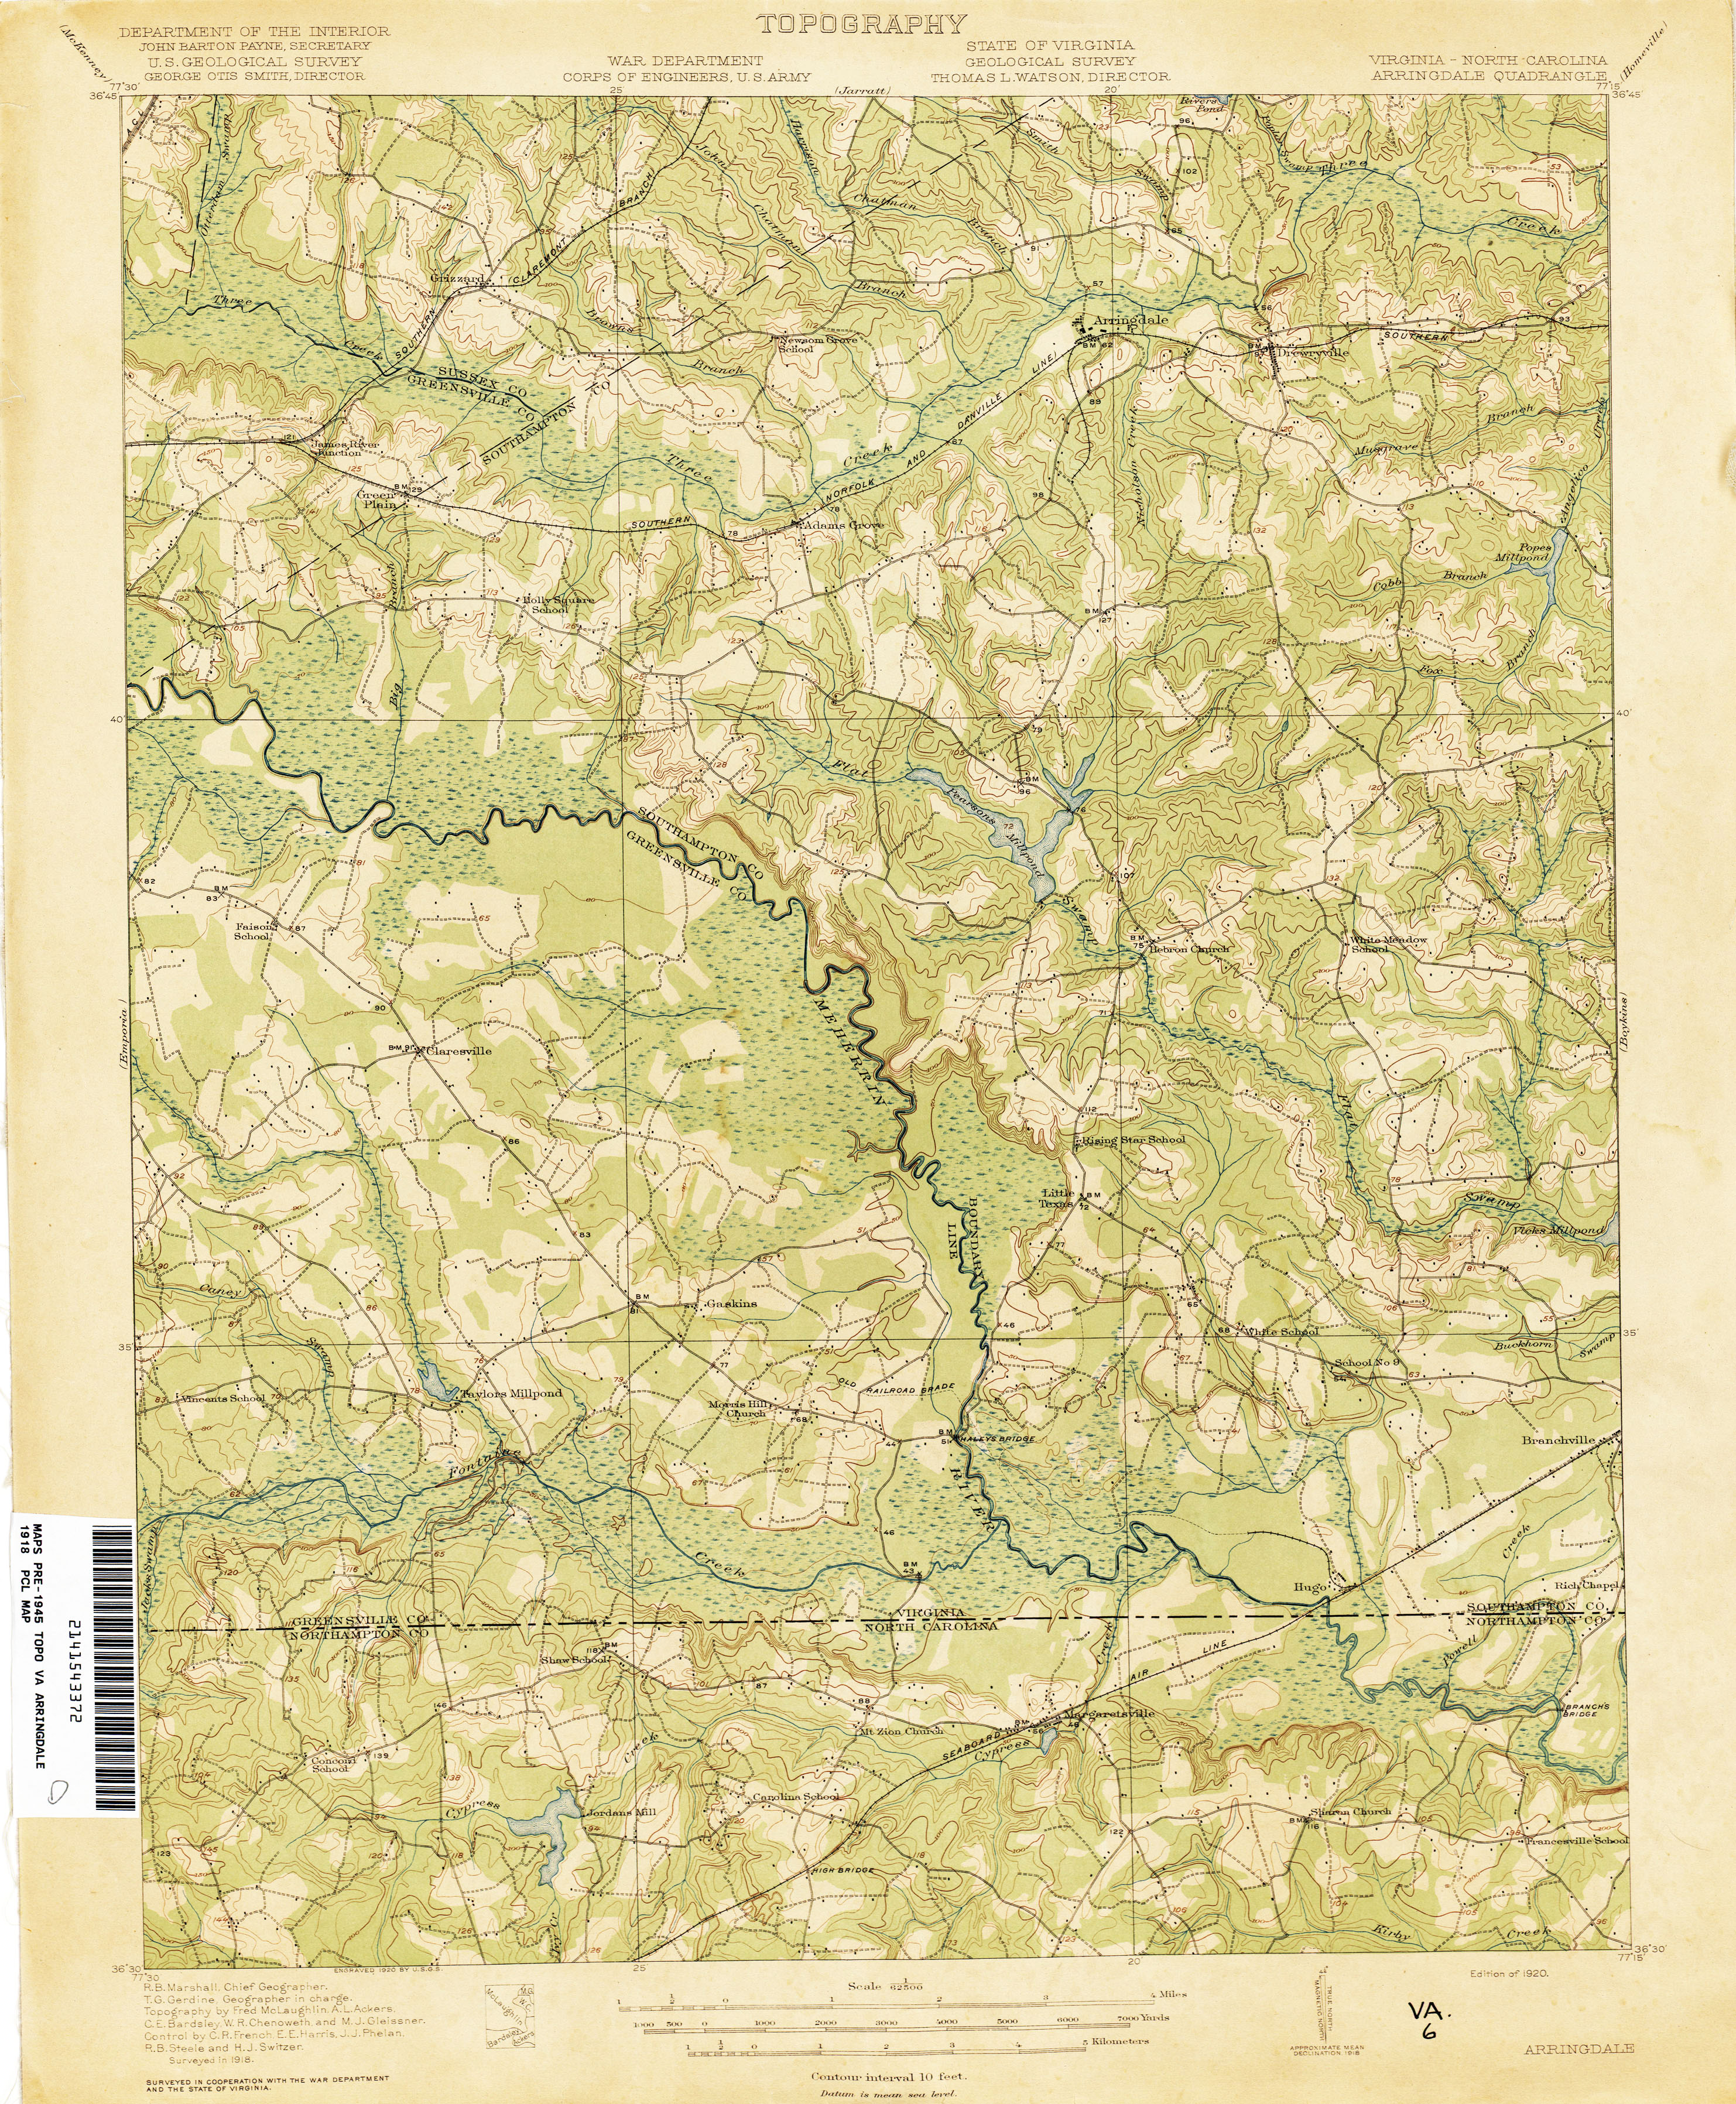 Topography Map Of Virginia.Virginia Historical Topographic Maps Perry Castaneda Map